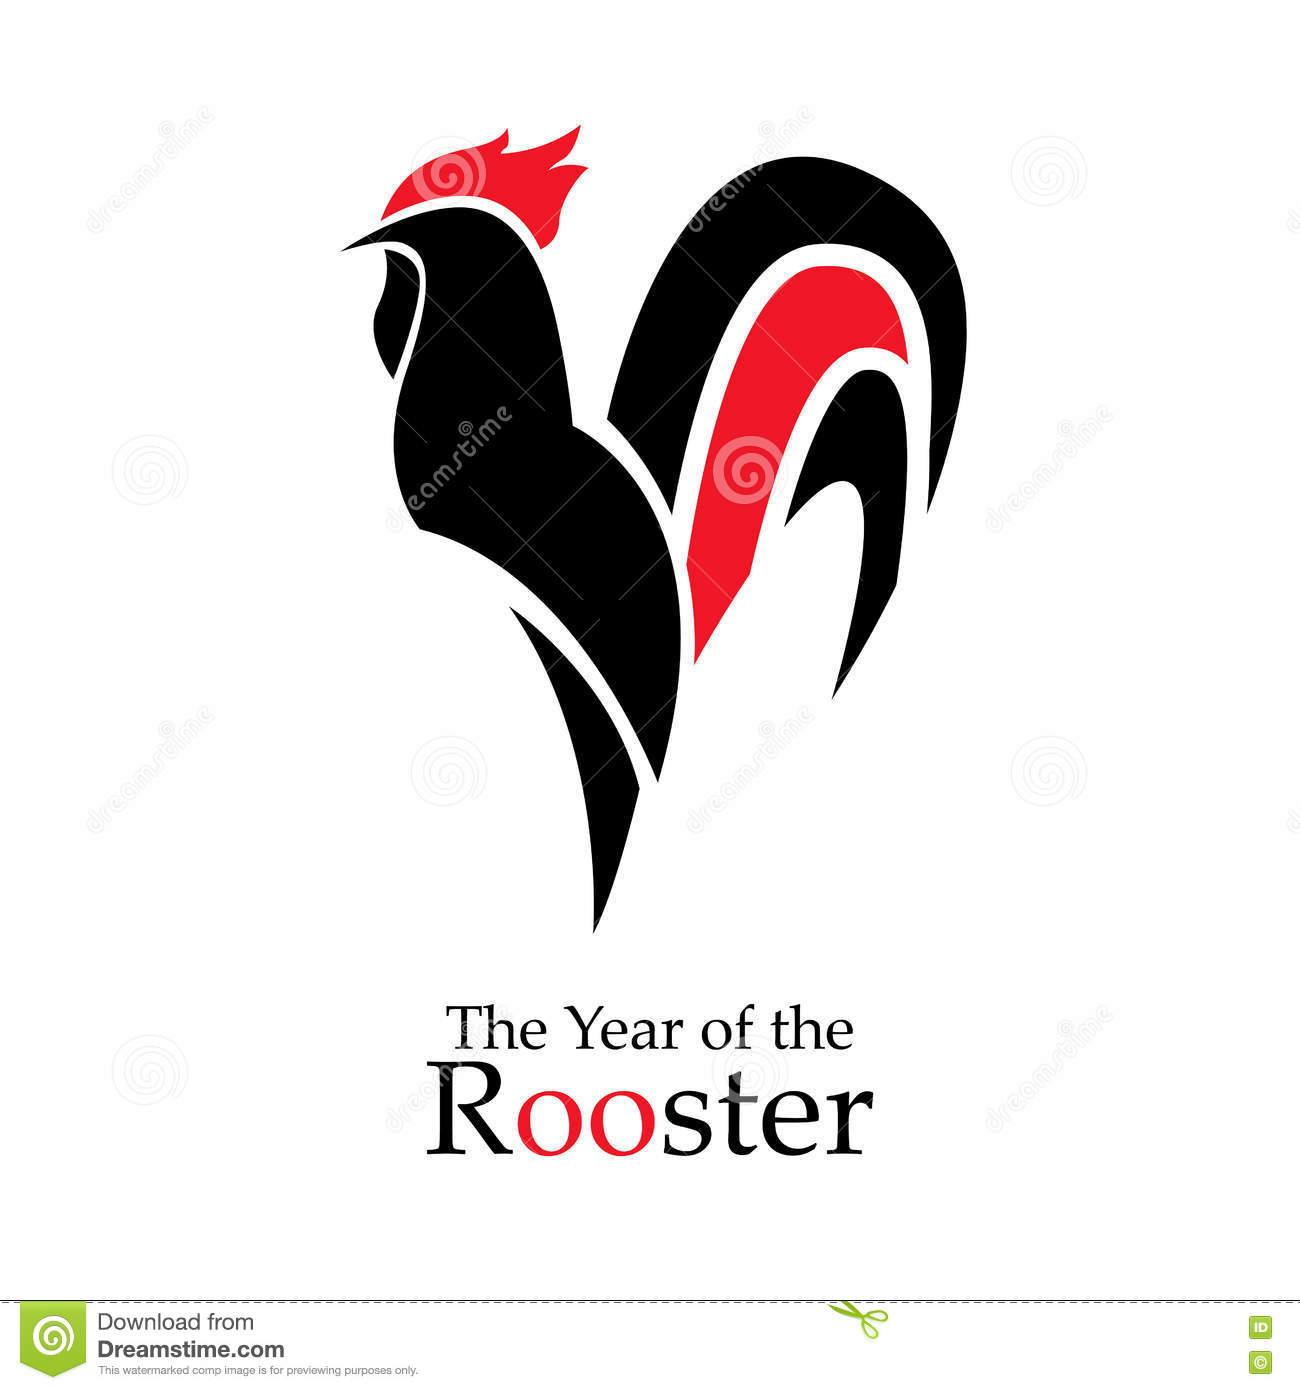 New year 2017 greeting pictures year of rooster happy chinese new year - 2017 Happy New Year Greeting Card Celebration Chinese New Year Of The Rooster Lunar